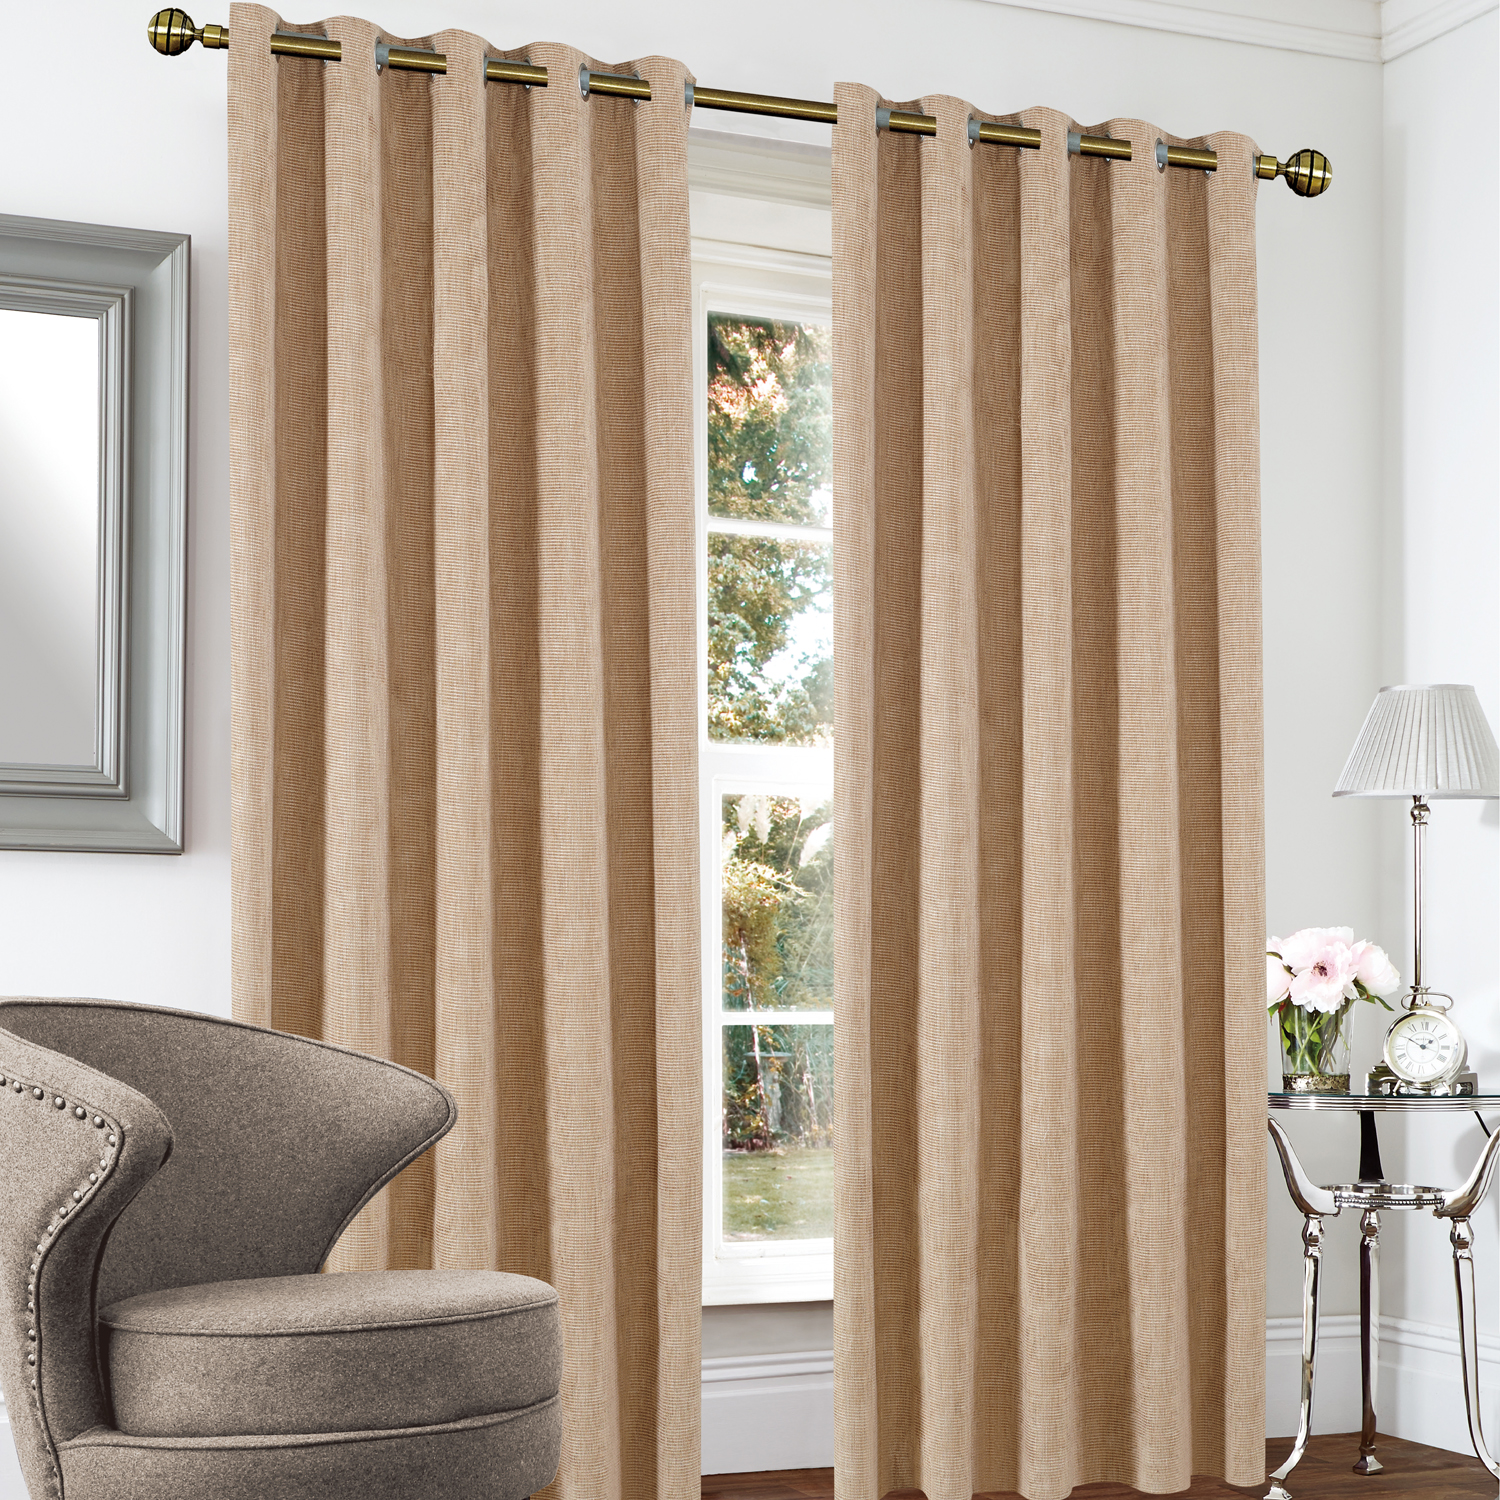 Blackout Amp Thermal Basketweave Curtains Home Store More